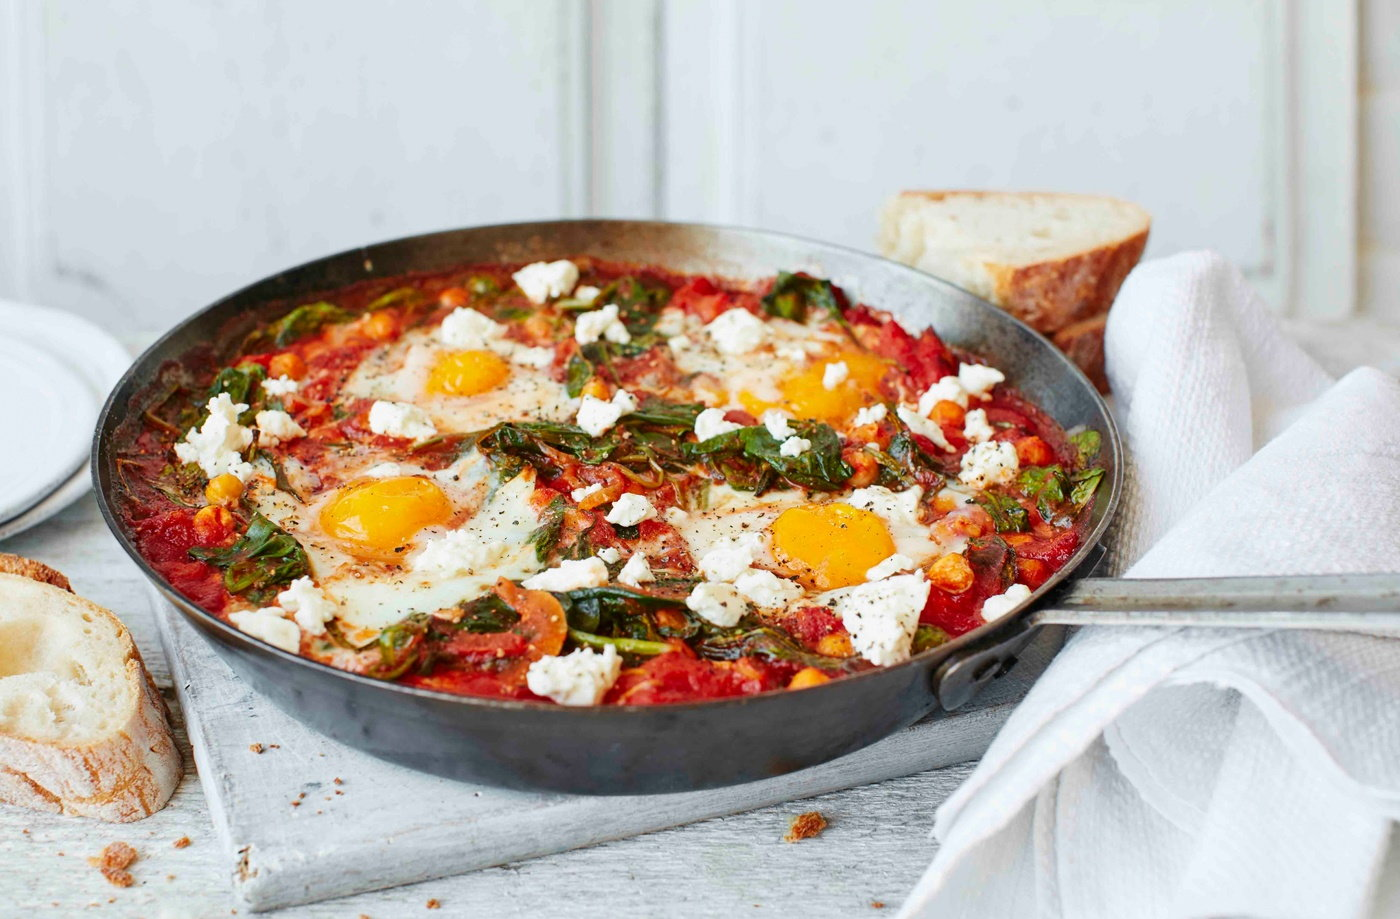 Chickpea and spinach baked eggs recipe